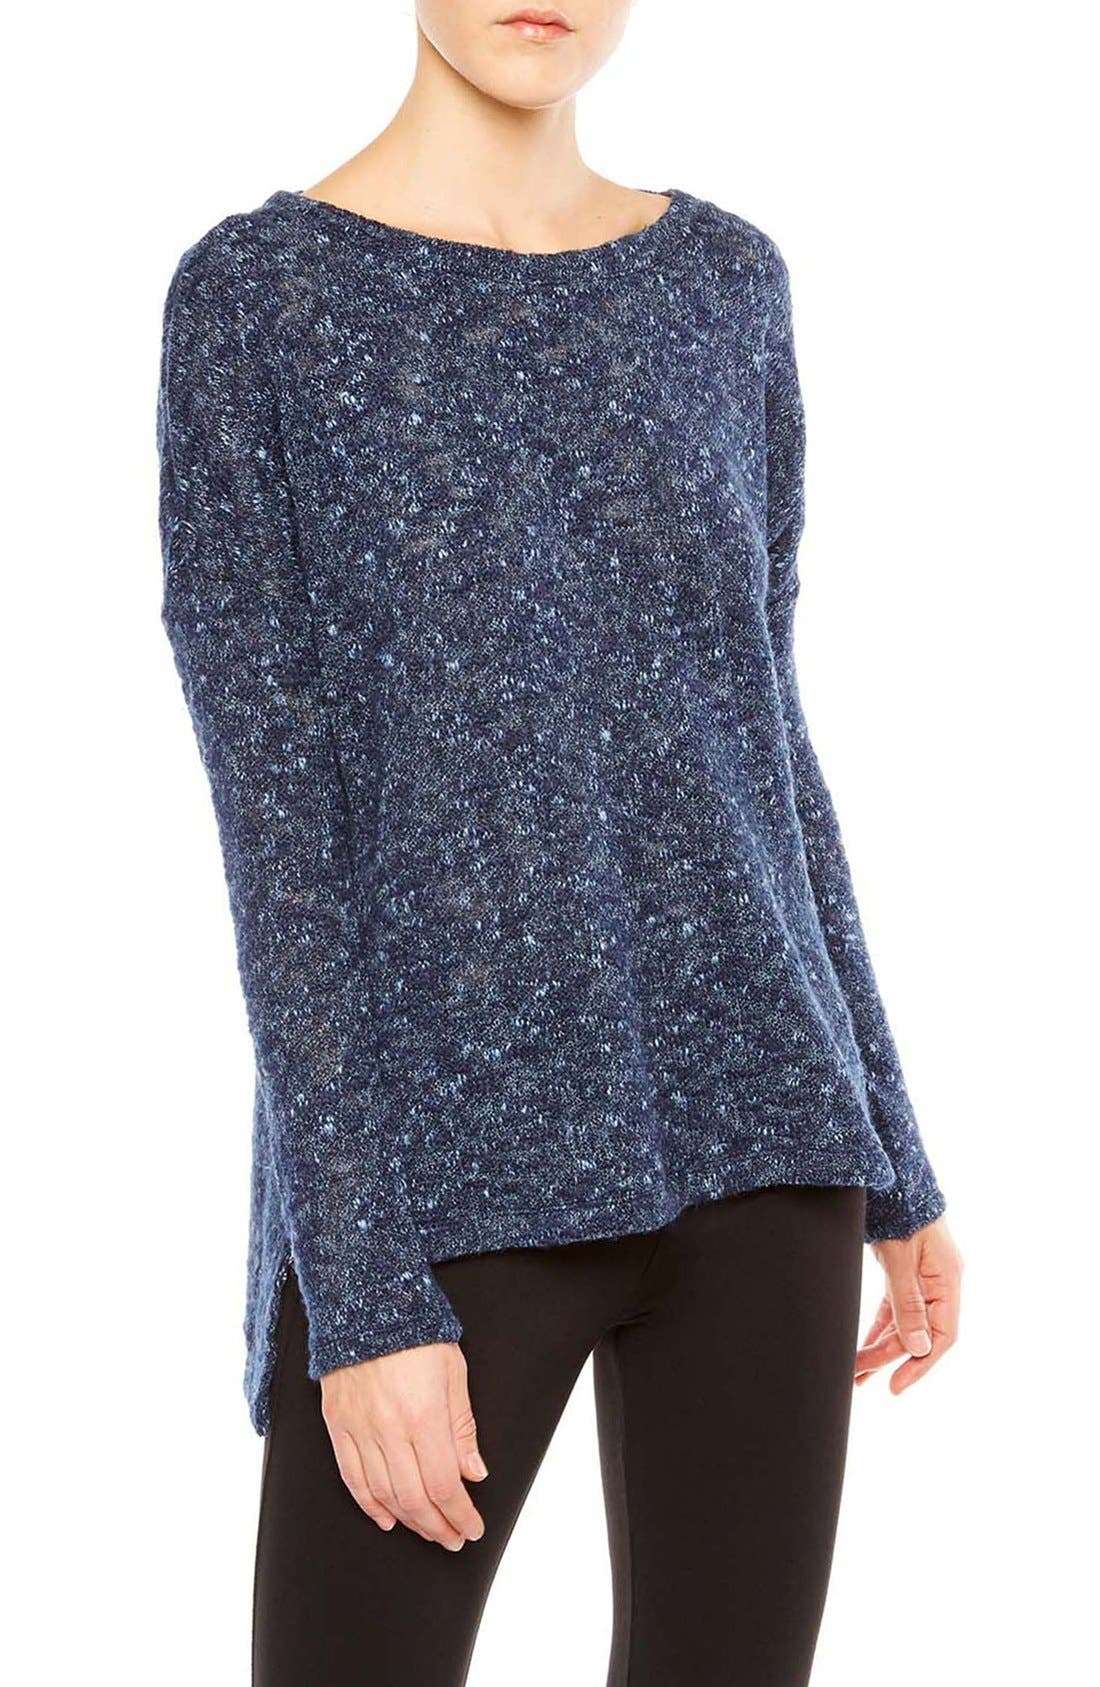 Alternate Image 1 Selected - Sanctuary 'Easy Street' High/Low Pullover